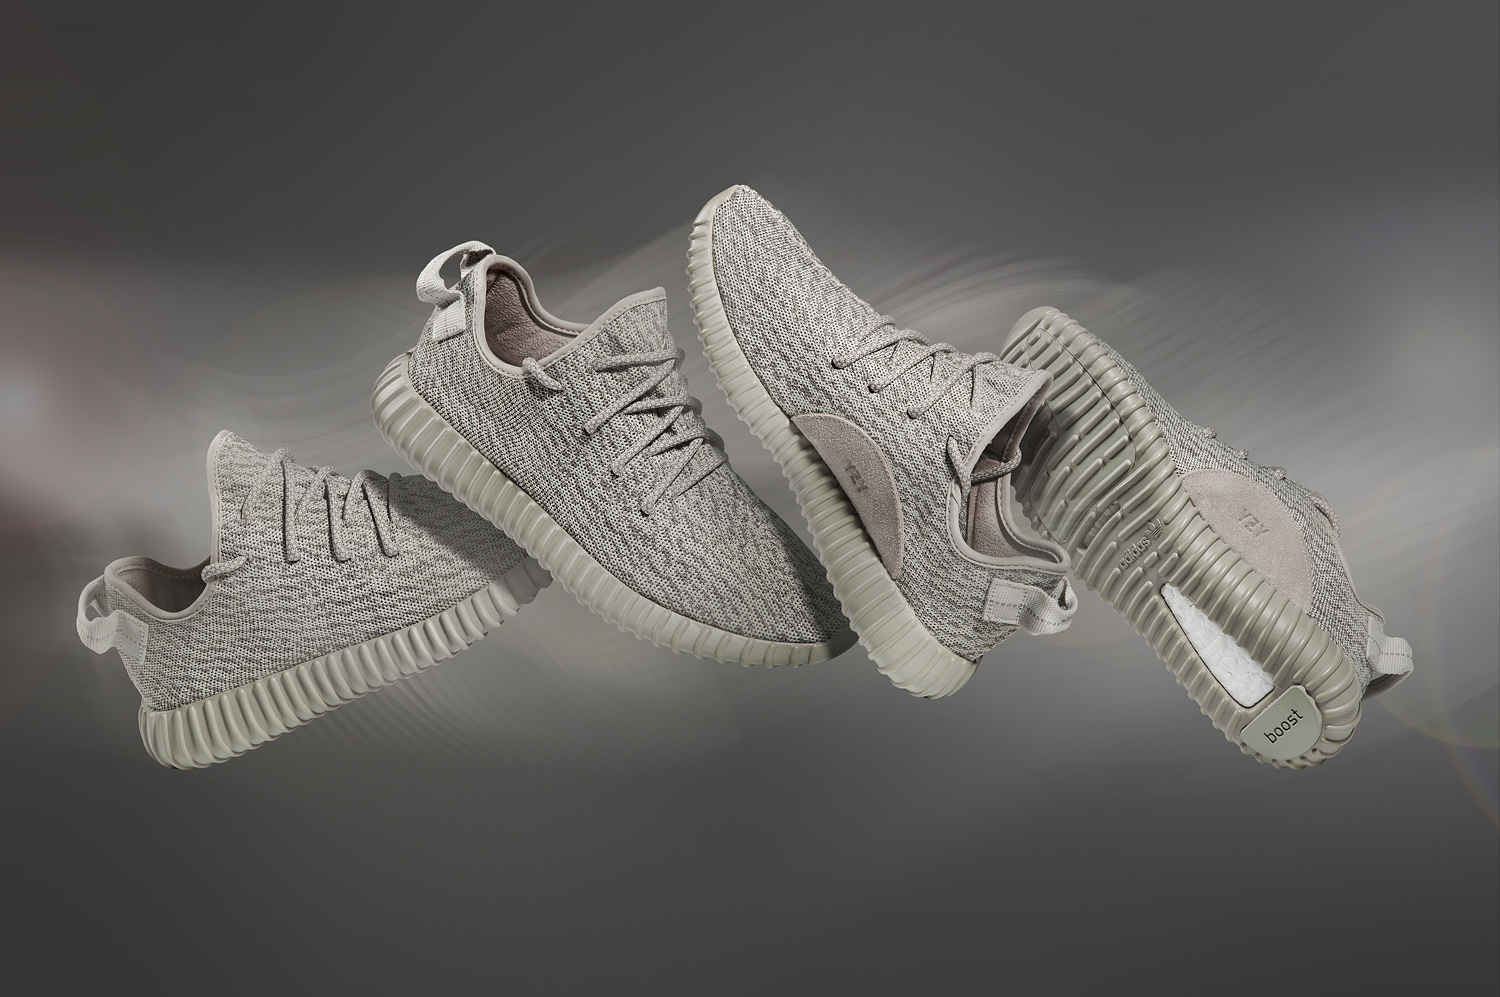 Yeezy Boost 350 kev foster photographer